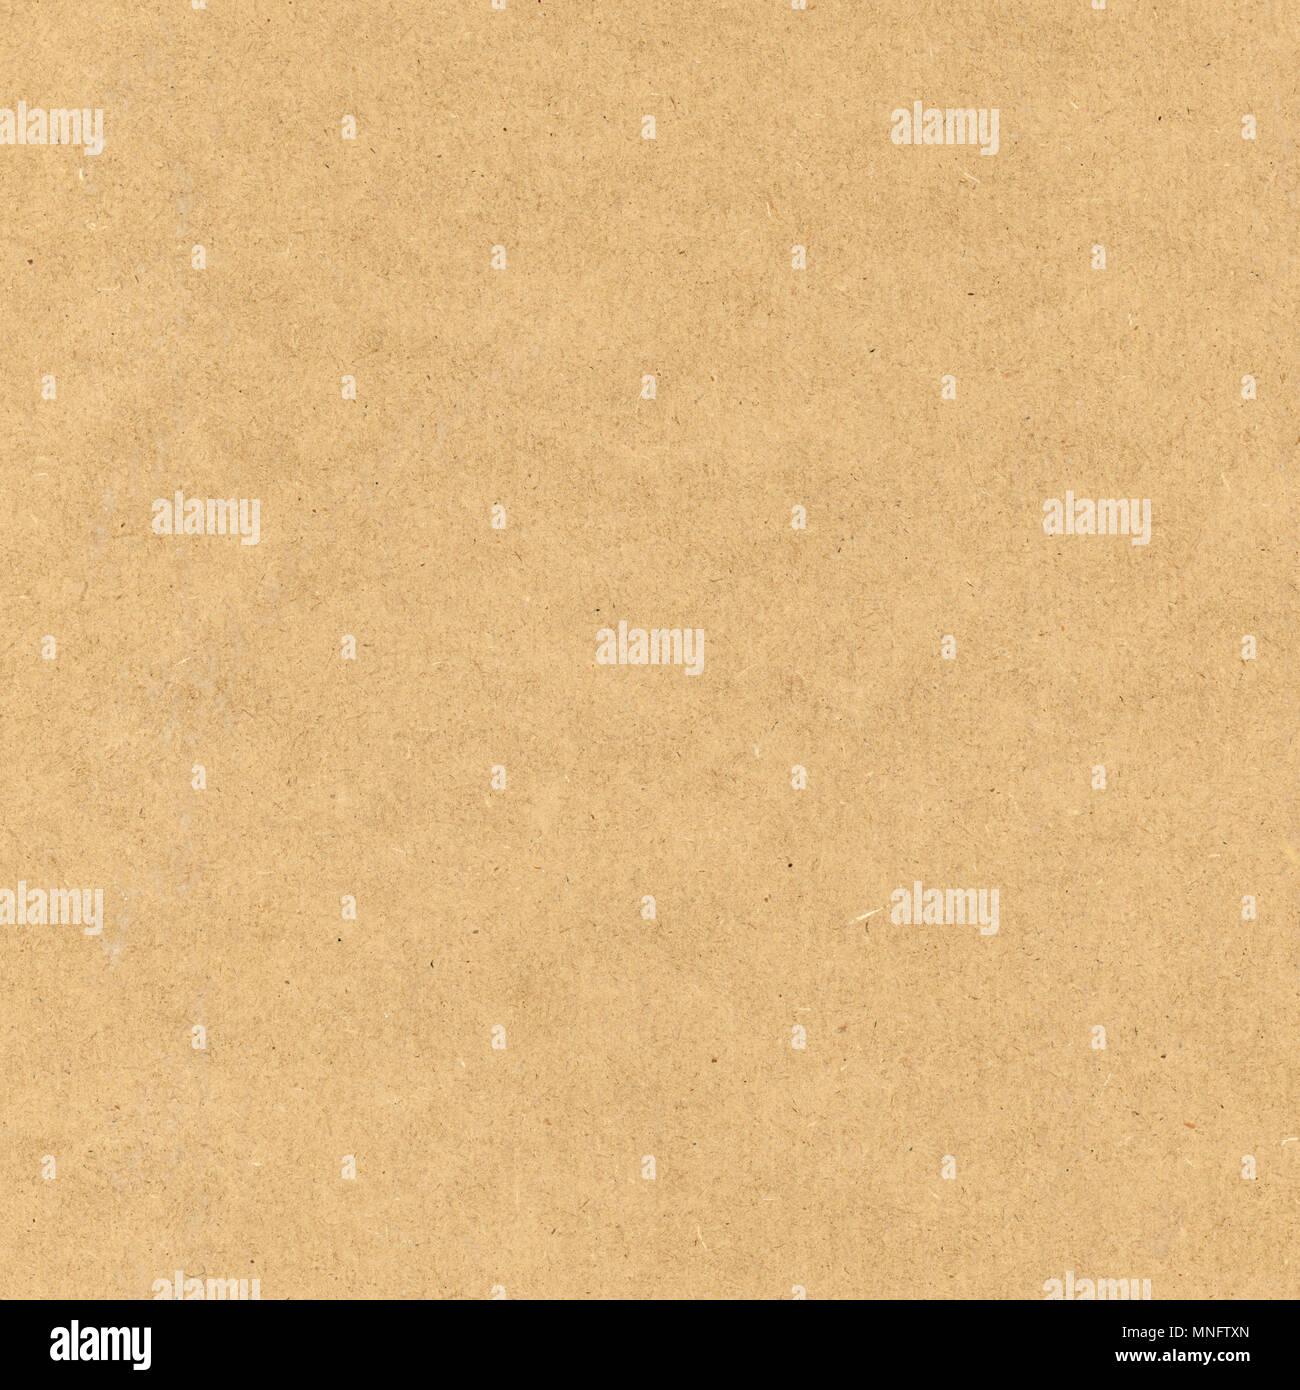 Paper texture background - Stock Image